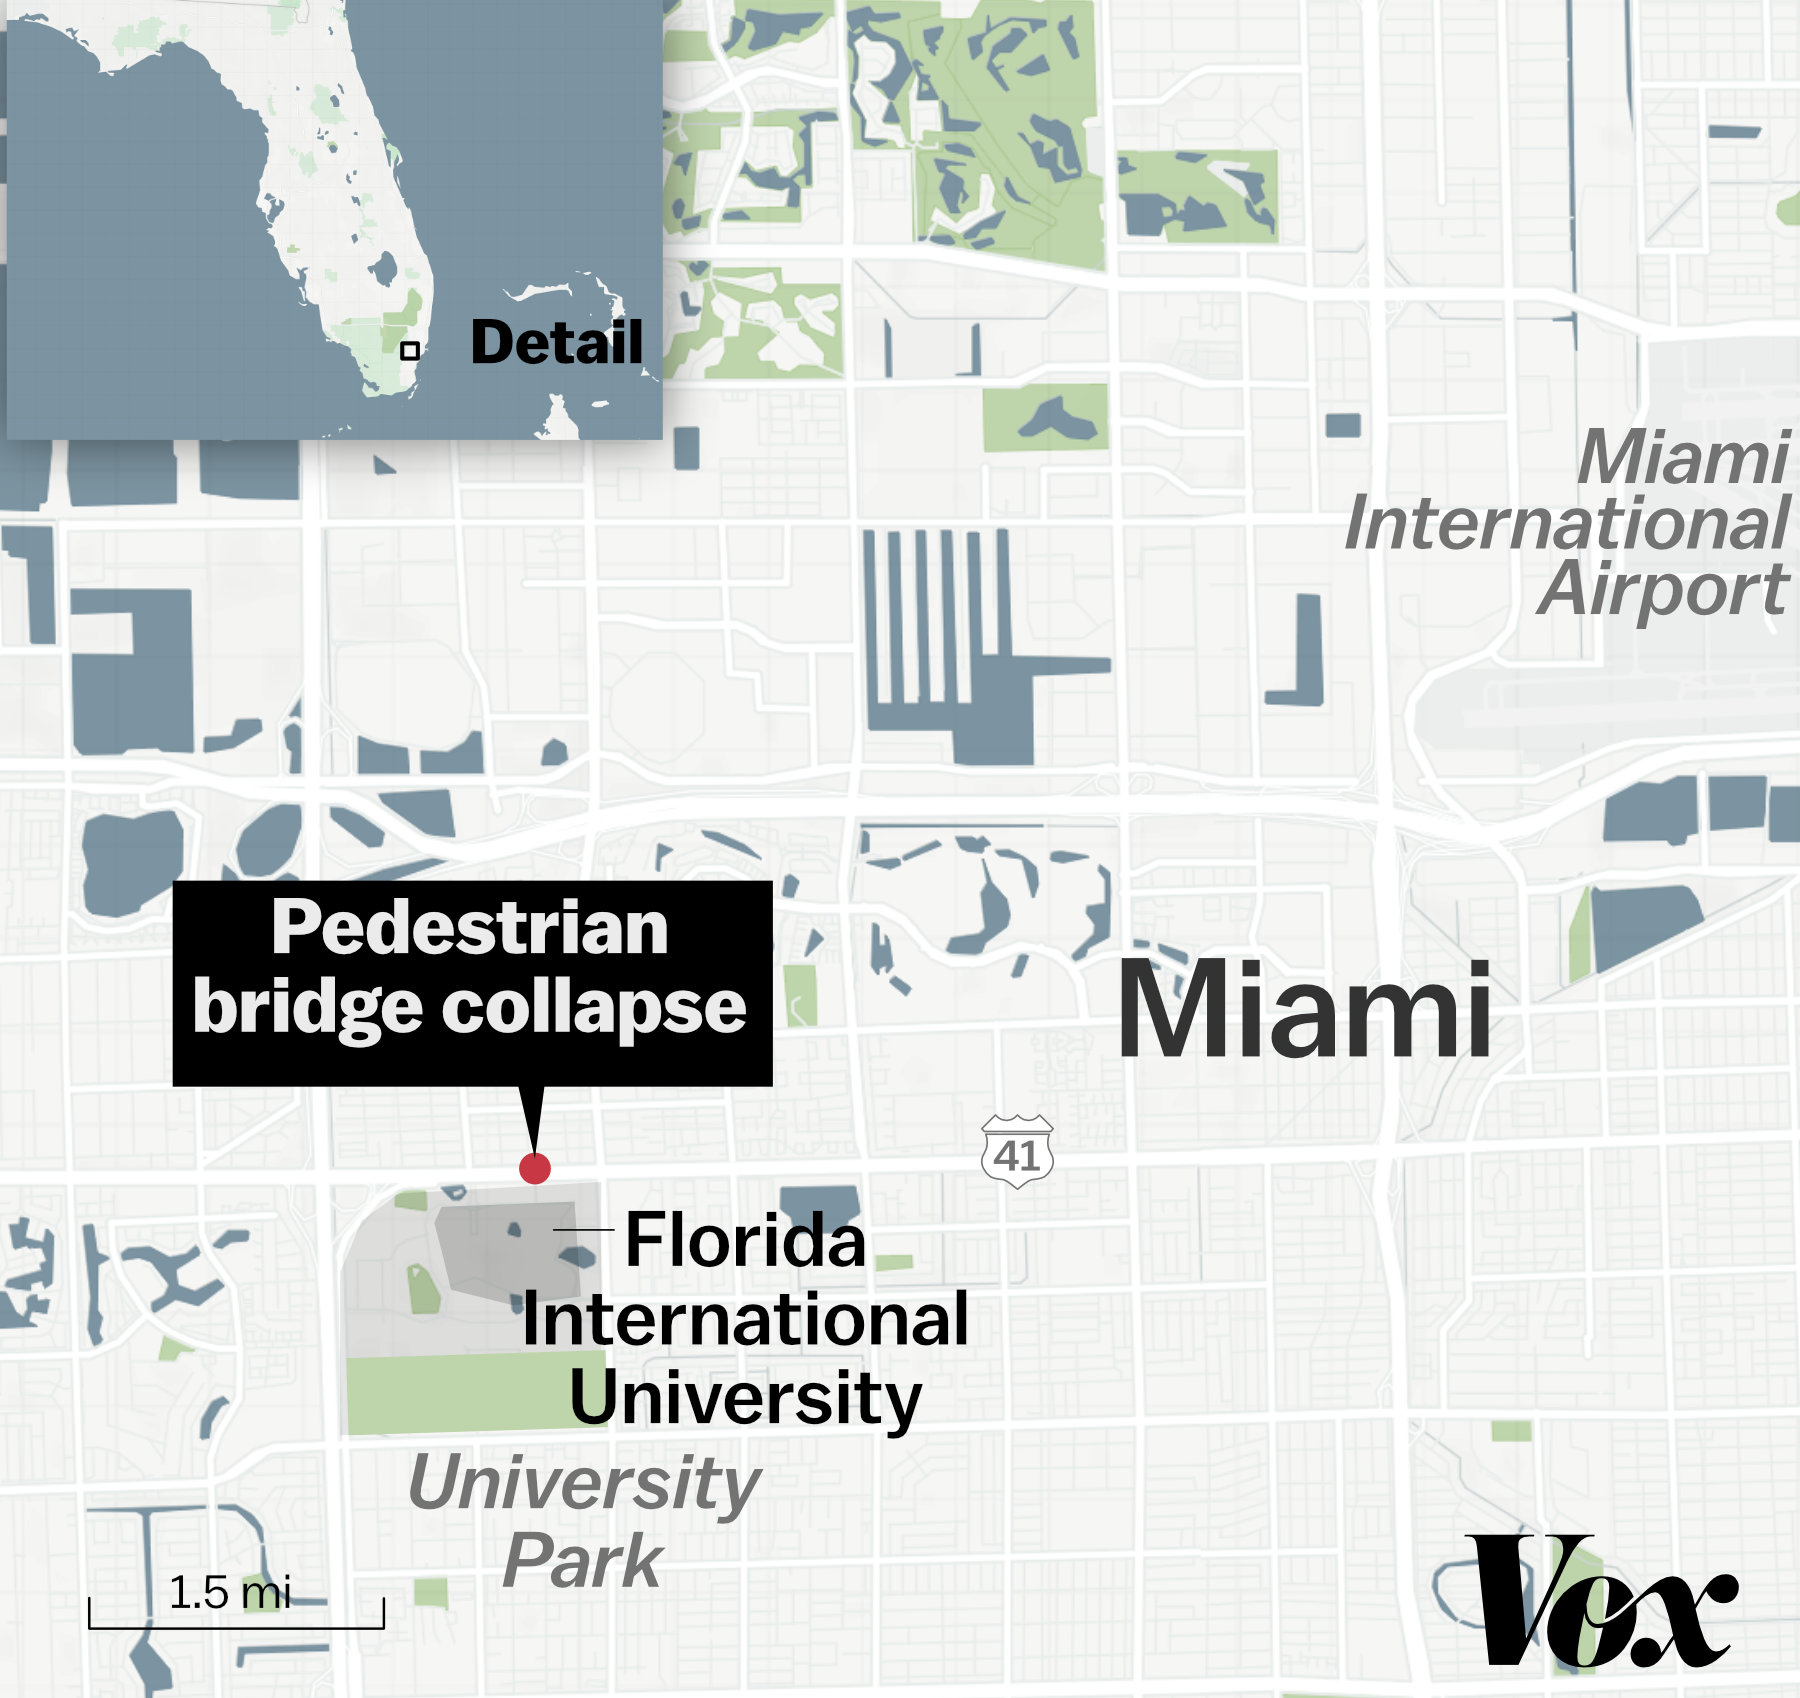 Pedestrian bridge collapses at Florida International University